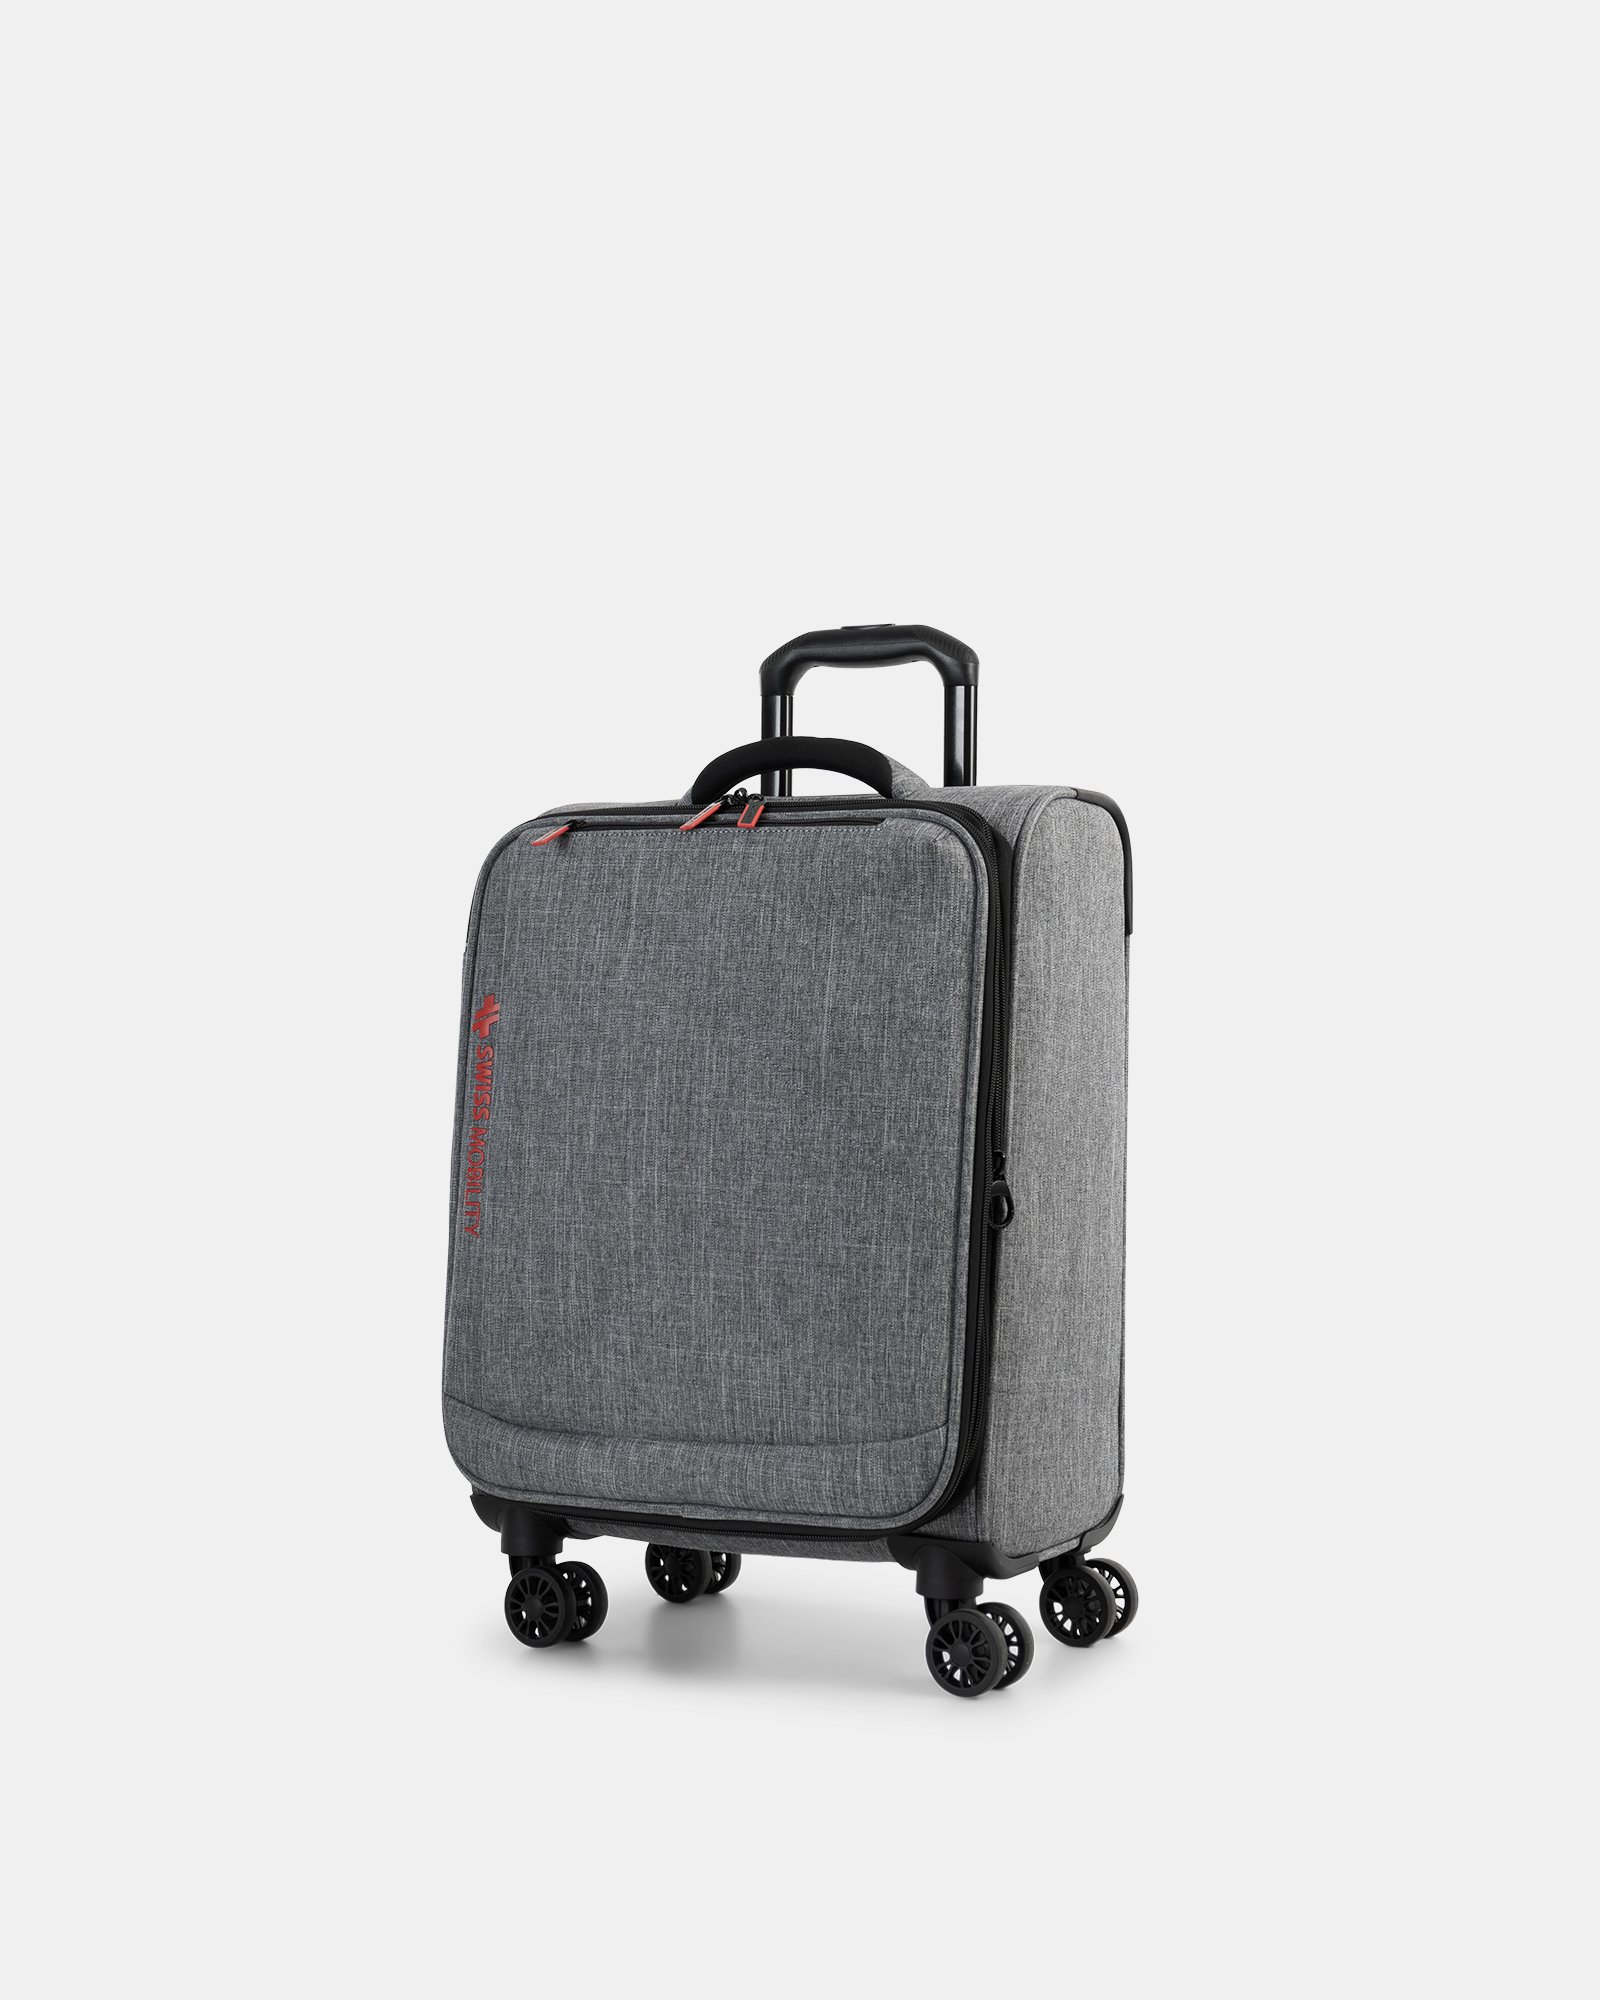 """YYZ - 21.5"""" SOFTSIDE CARRY-ON WITH Double 360-degree spinner wheels - CHARCOAL - Swiss Mobility - Zoom"""